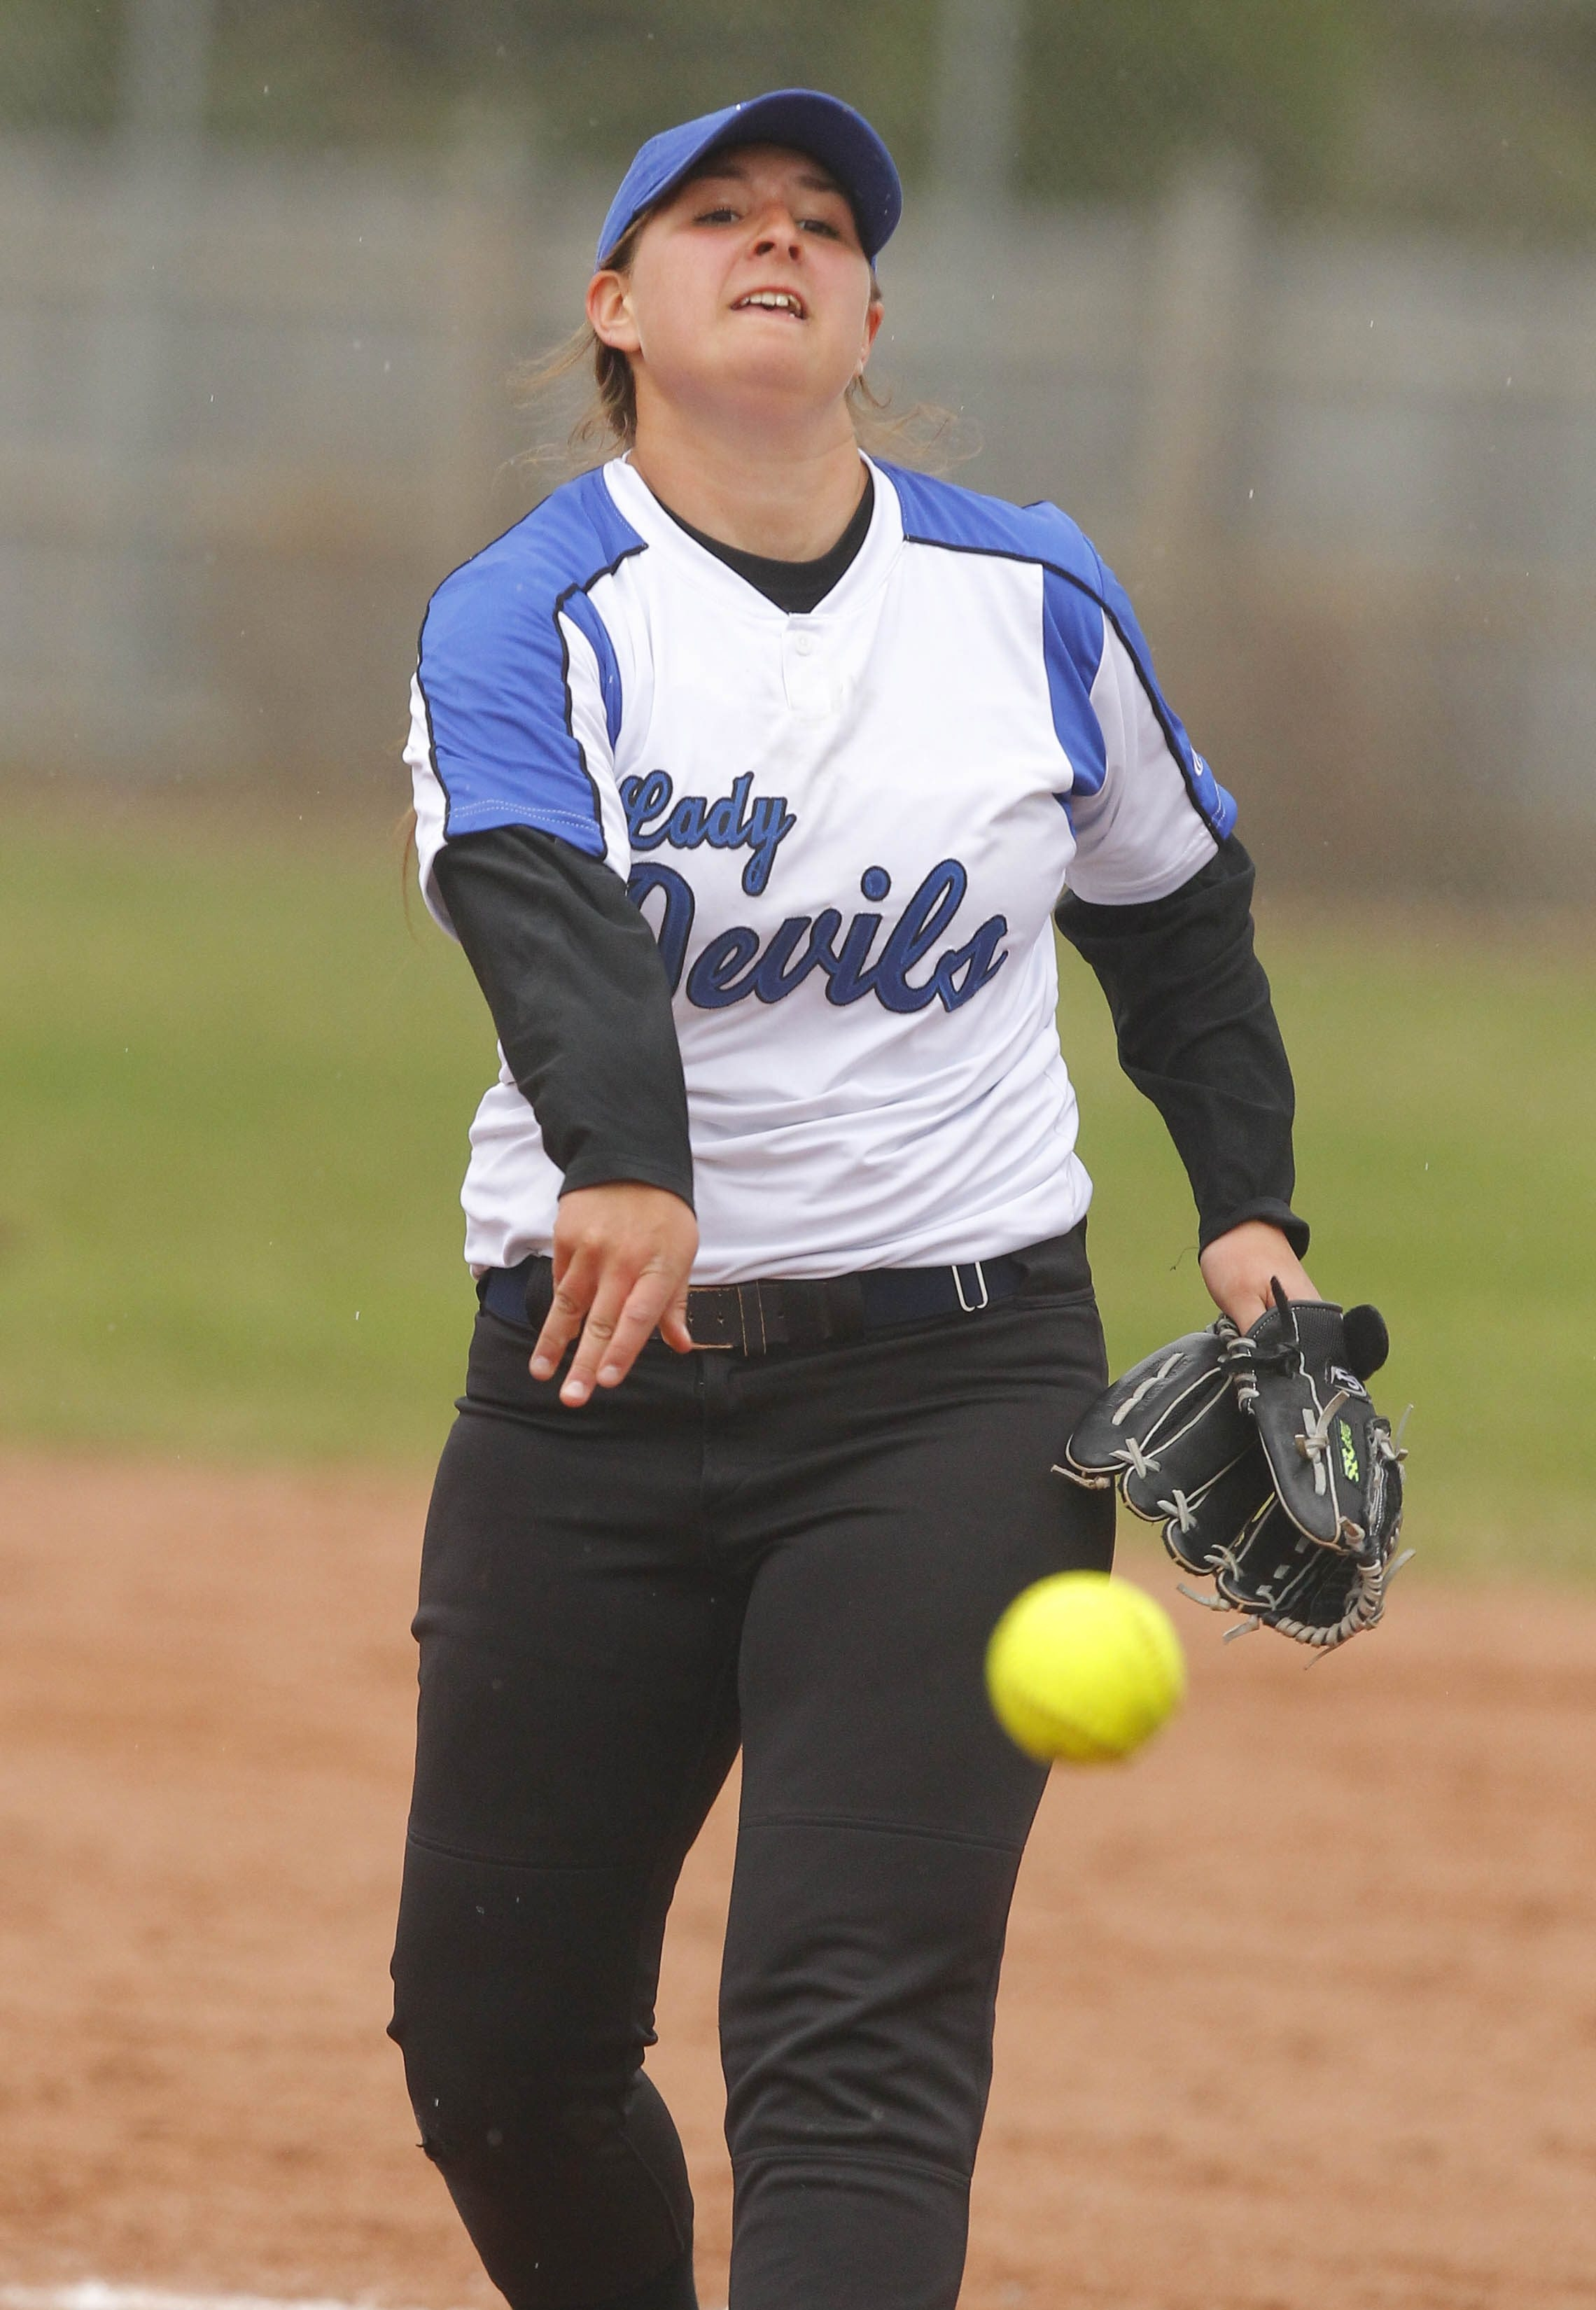 Charlotte Miller of Kenmore West fanned 10 in a 1-0 win over rival Kenmore East.